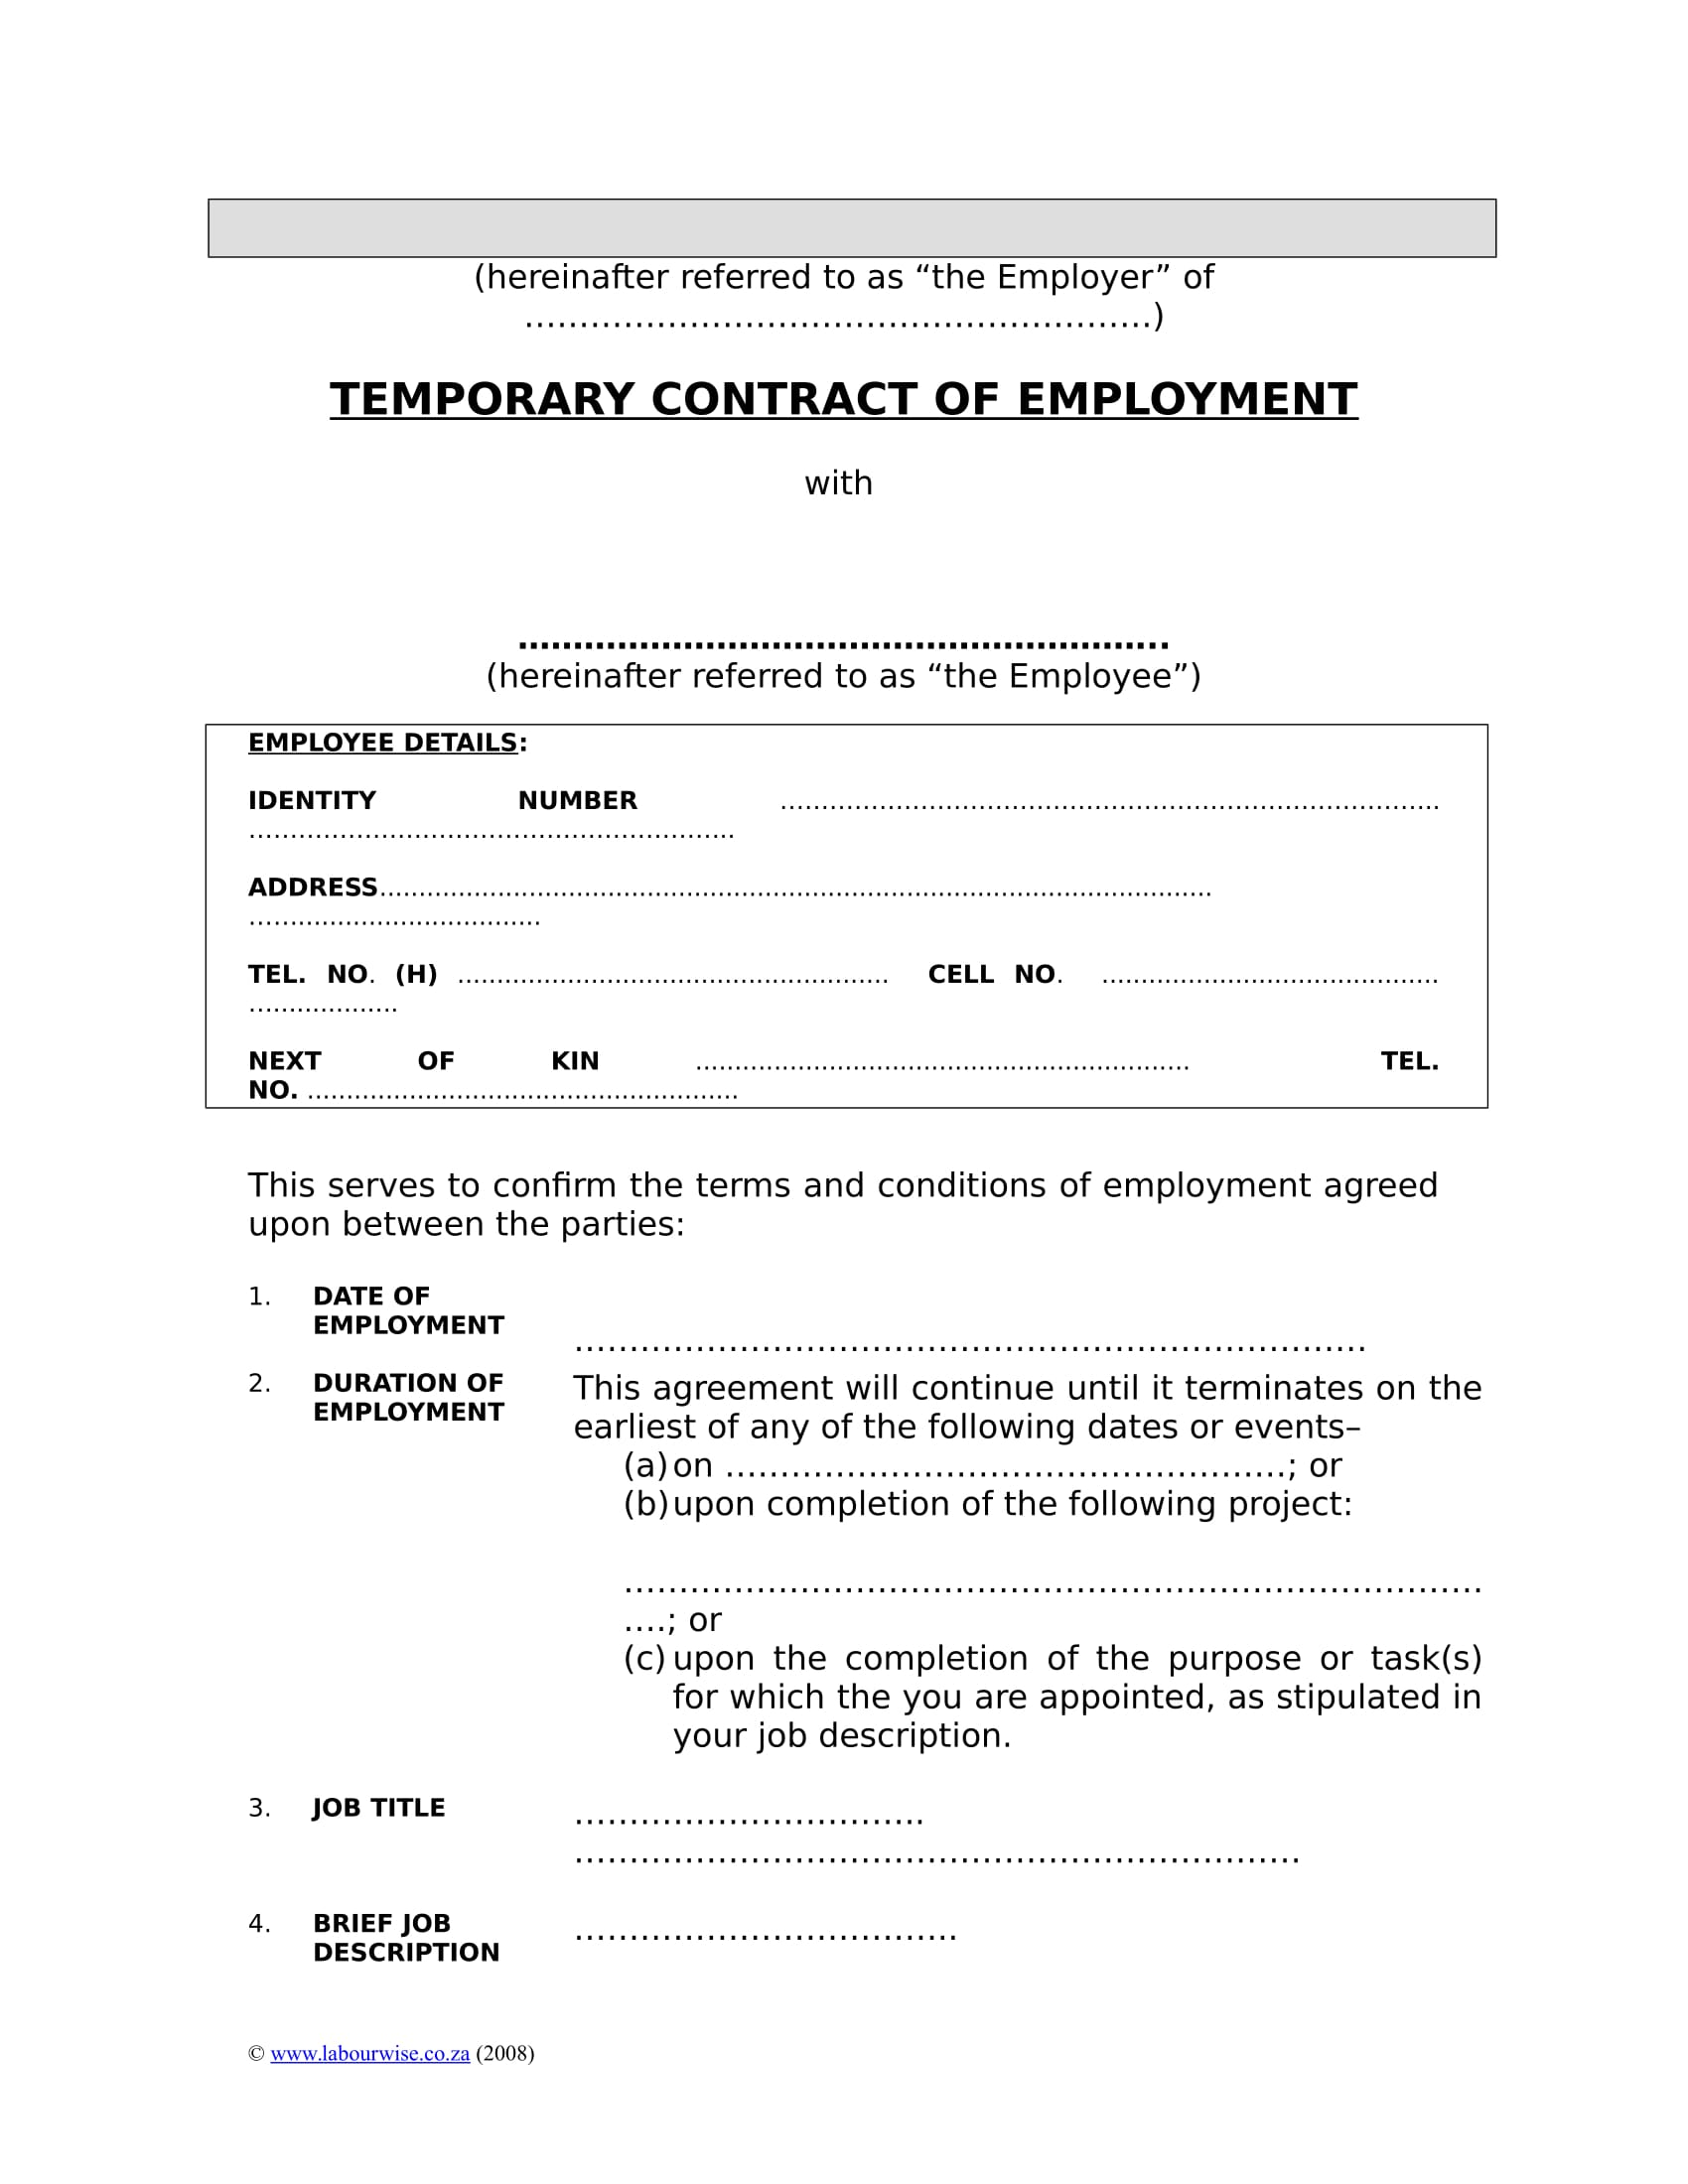 temporary contract of employment example